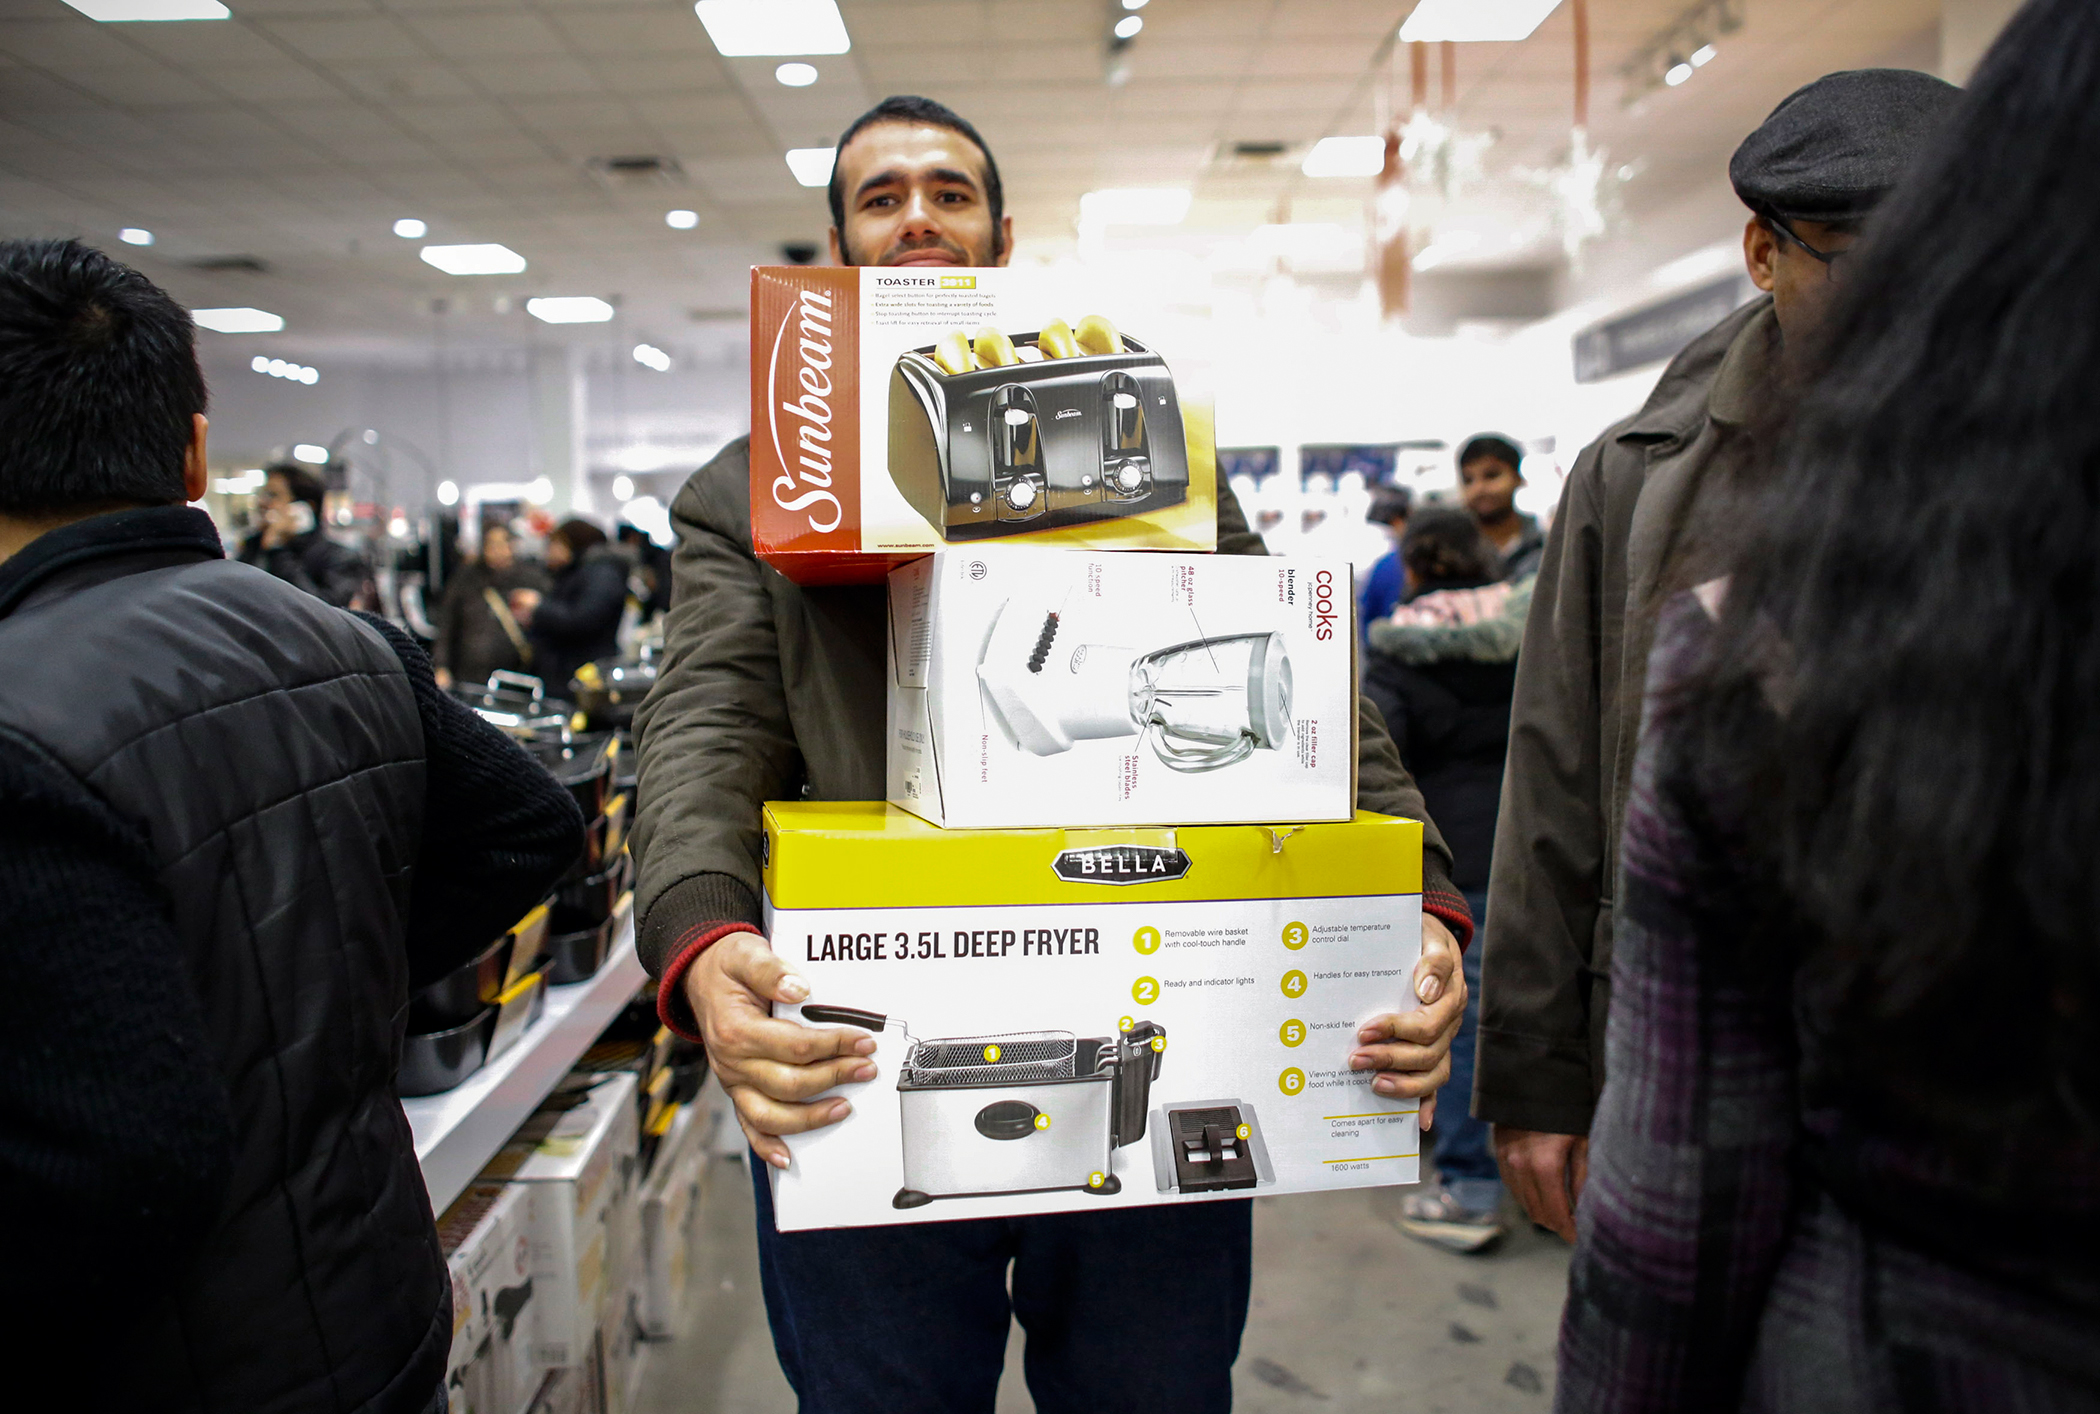 J.C. Penney has the biggest average discounts on Black Friday, according to a new study.